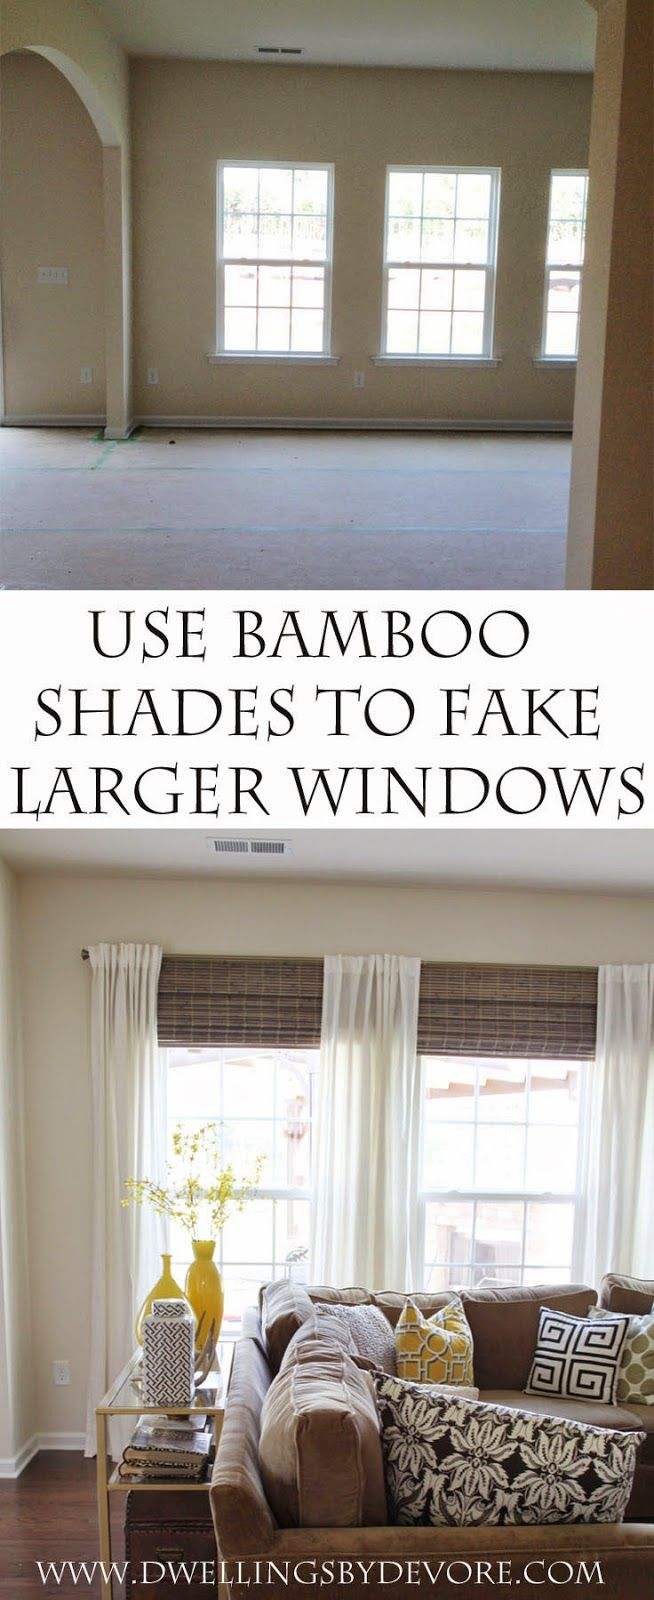 Door window treatments - Dwellings By Devore Bamboo Shades To Make Your Windows Look Larger